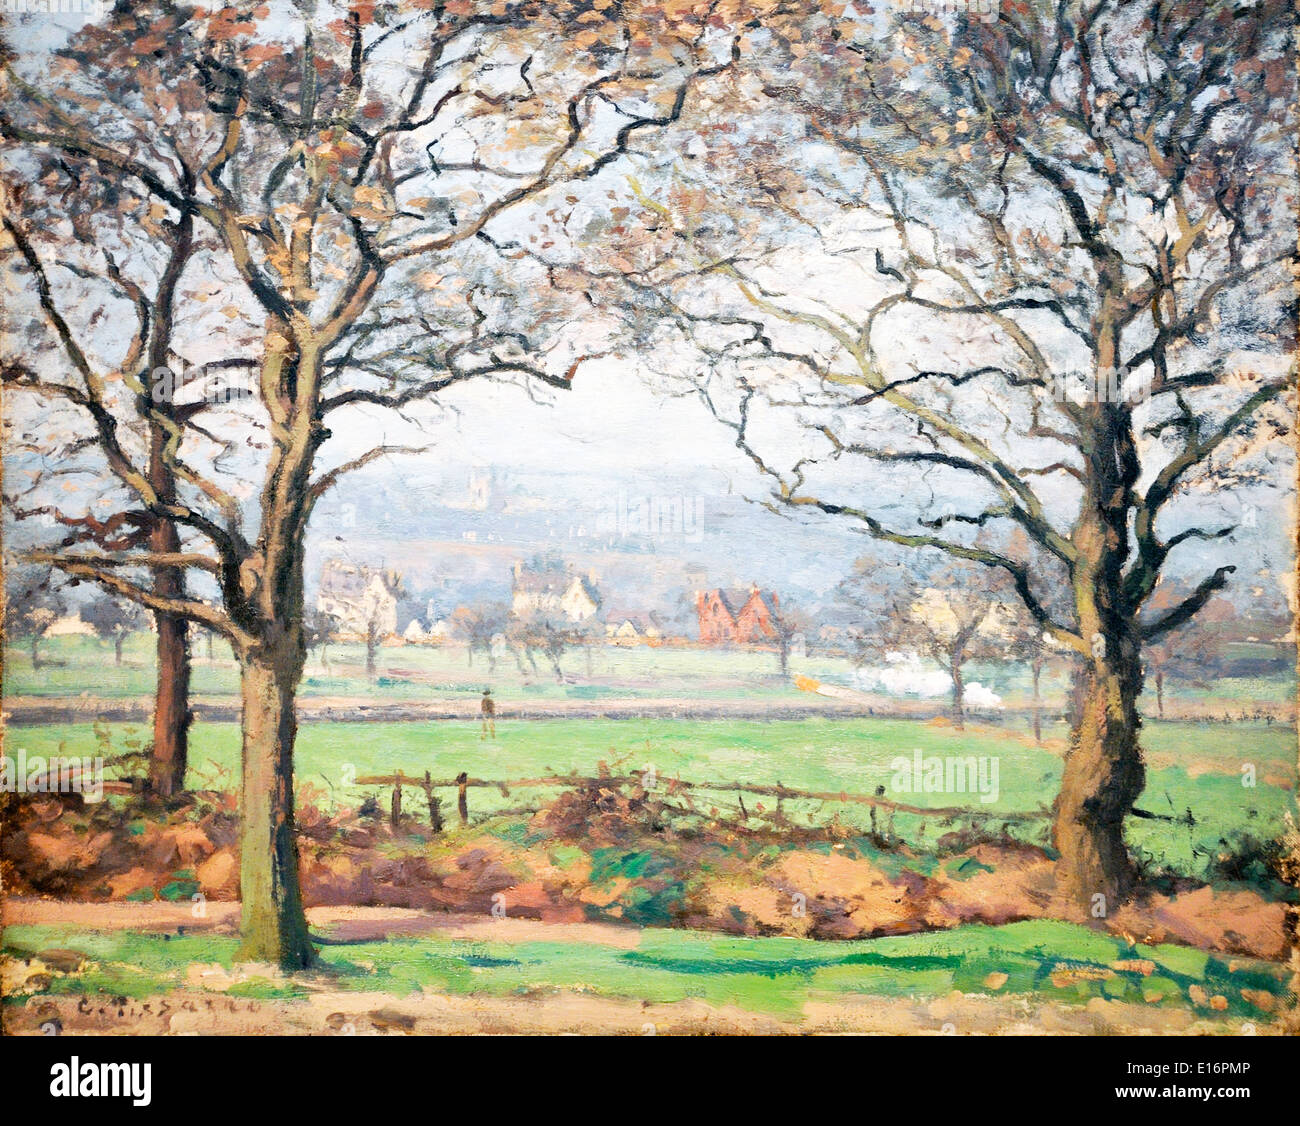 Near Sydenham Hill, Looking towards Lower Norwood by Camille Pissarro,1871 - Stock Image